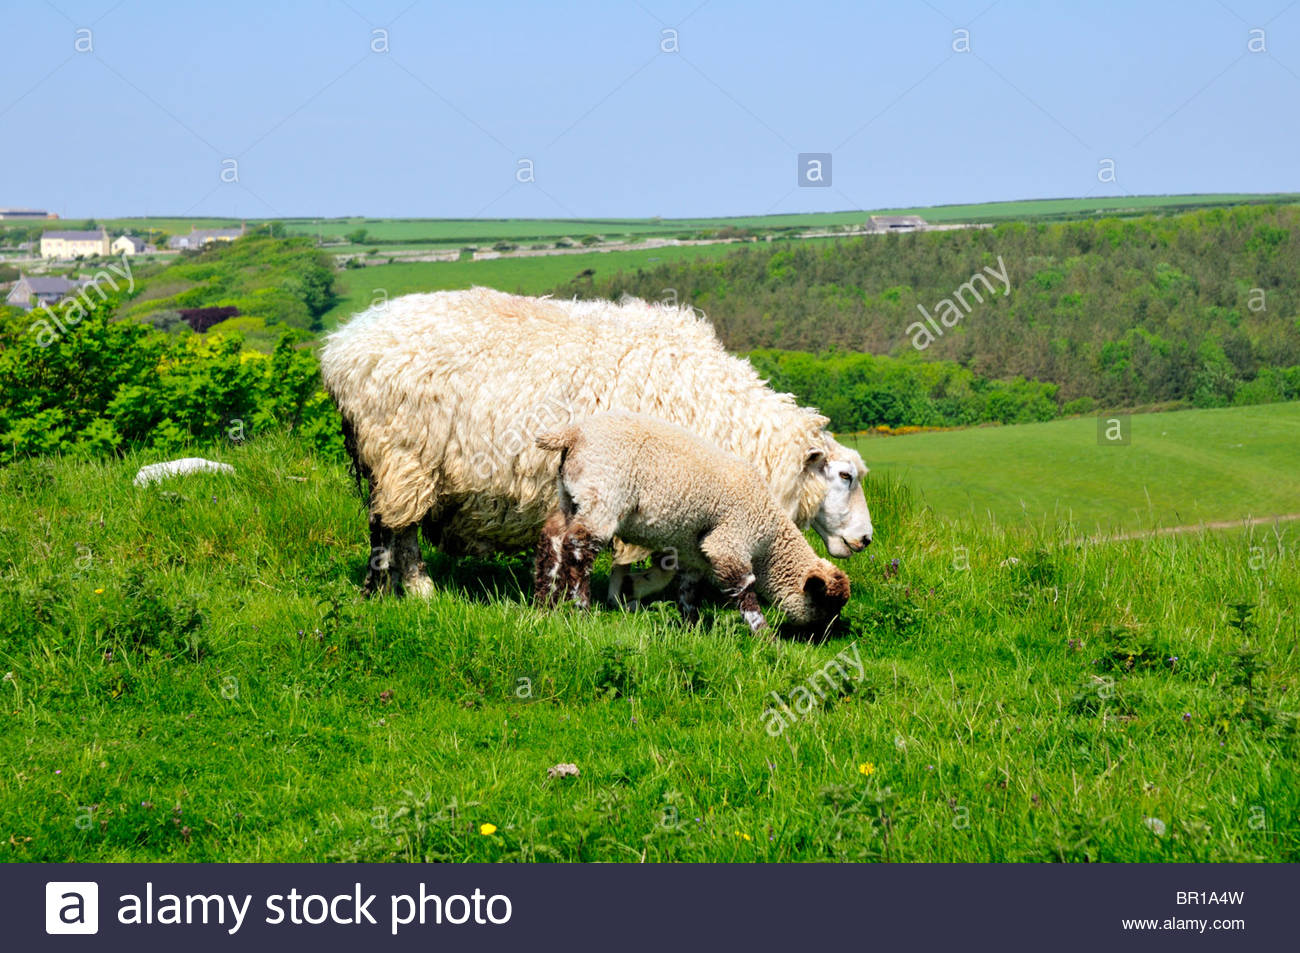 ewe and lamb grazing side by side on grass in the british countryside - Stock Image